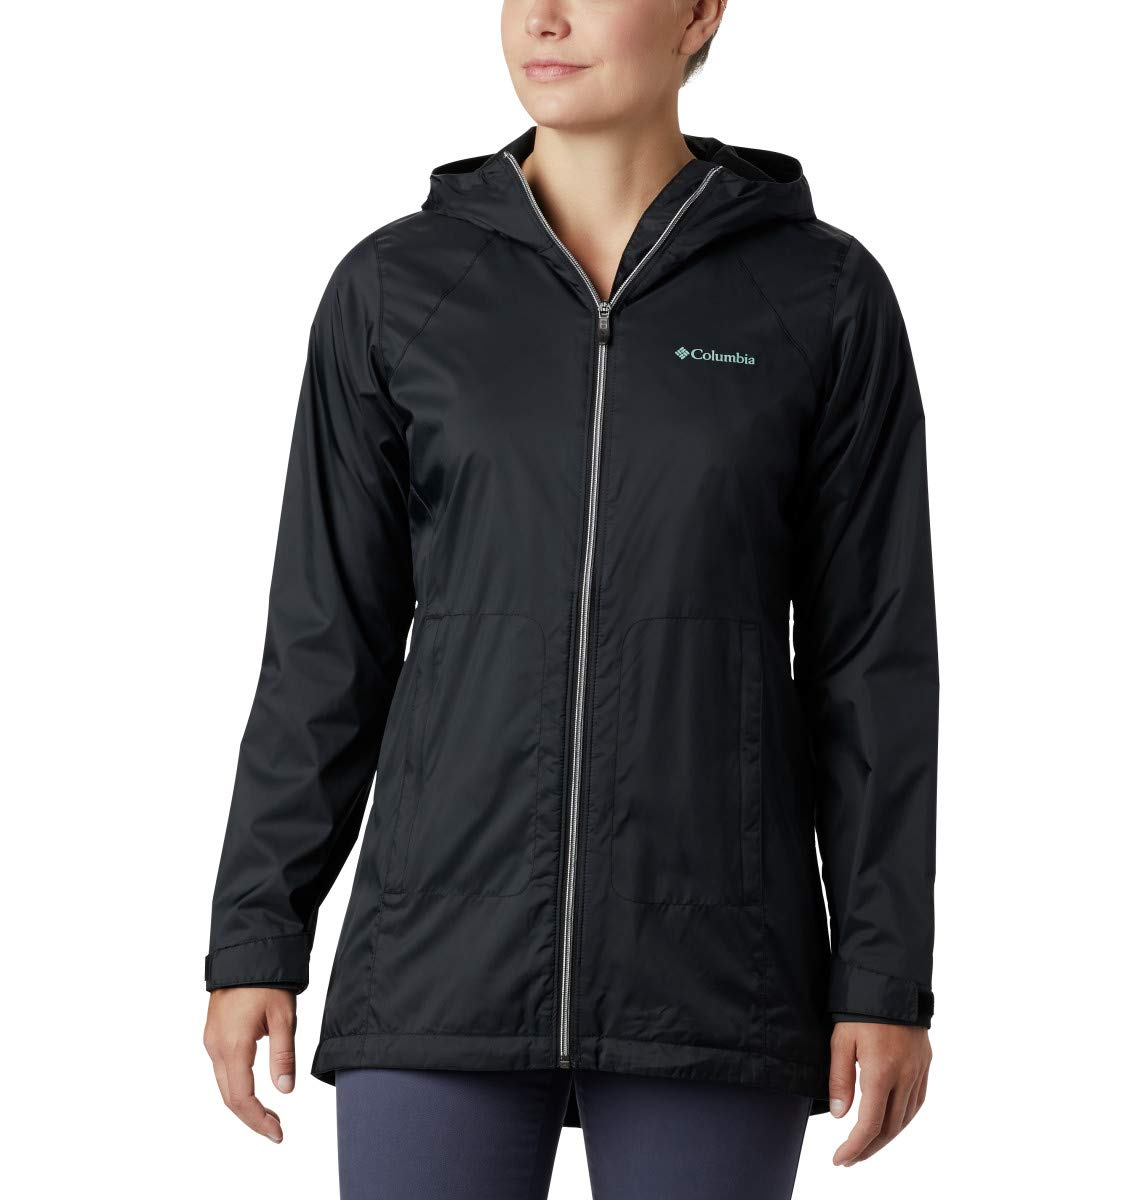 Columbia Women's Plus Size Switchback Lined Long Jacket, Black, 3X by Columbia